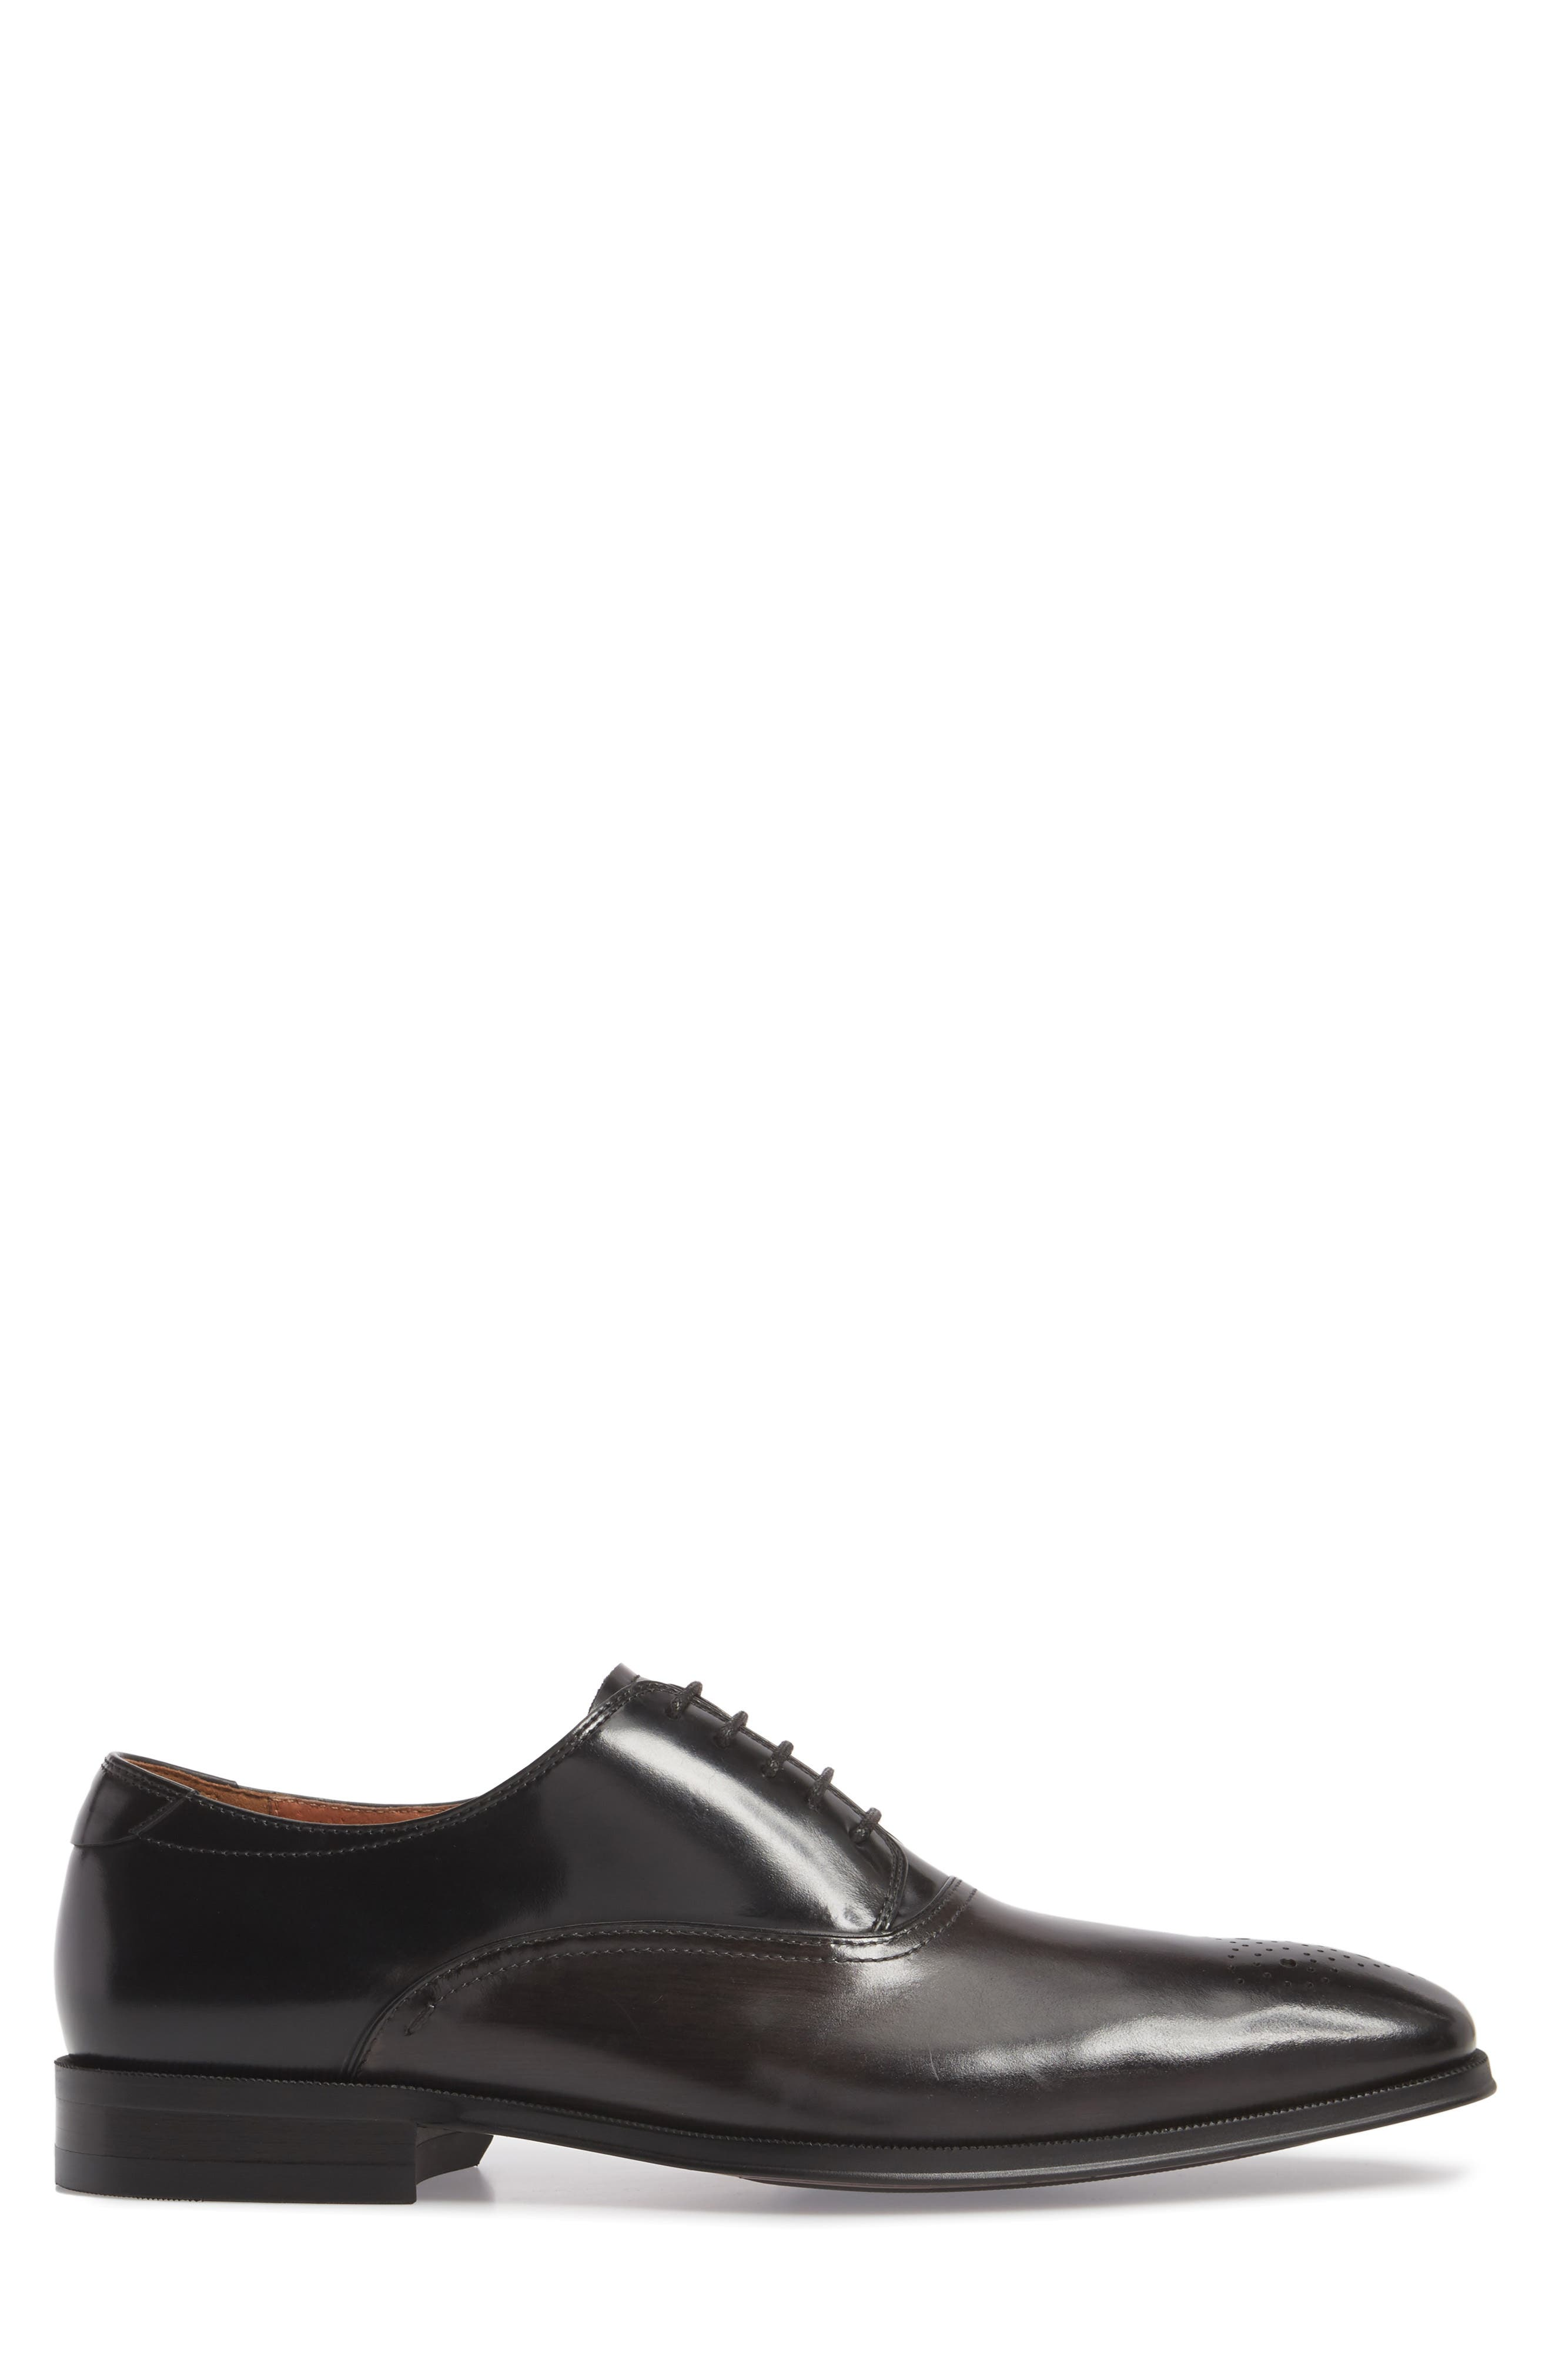 Belfast Brogued Derby,                             Alternate thumbnail 3, color,                             GRAY/ BLACK LEATHER